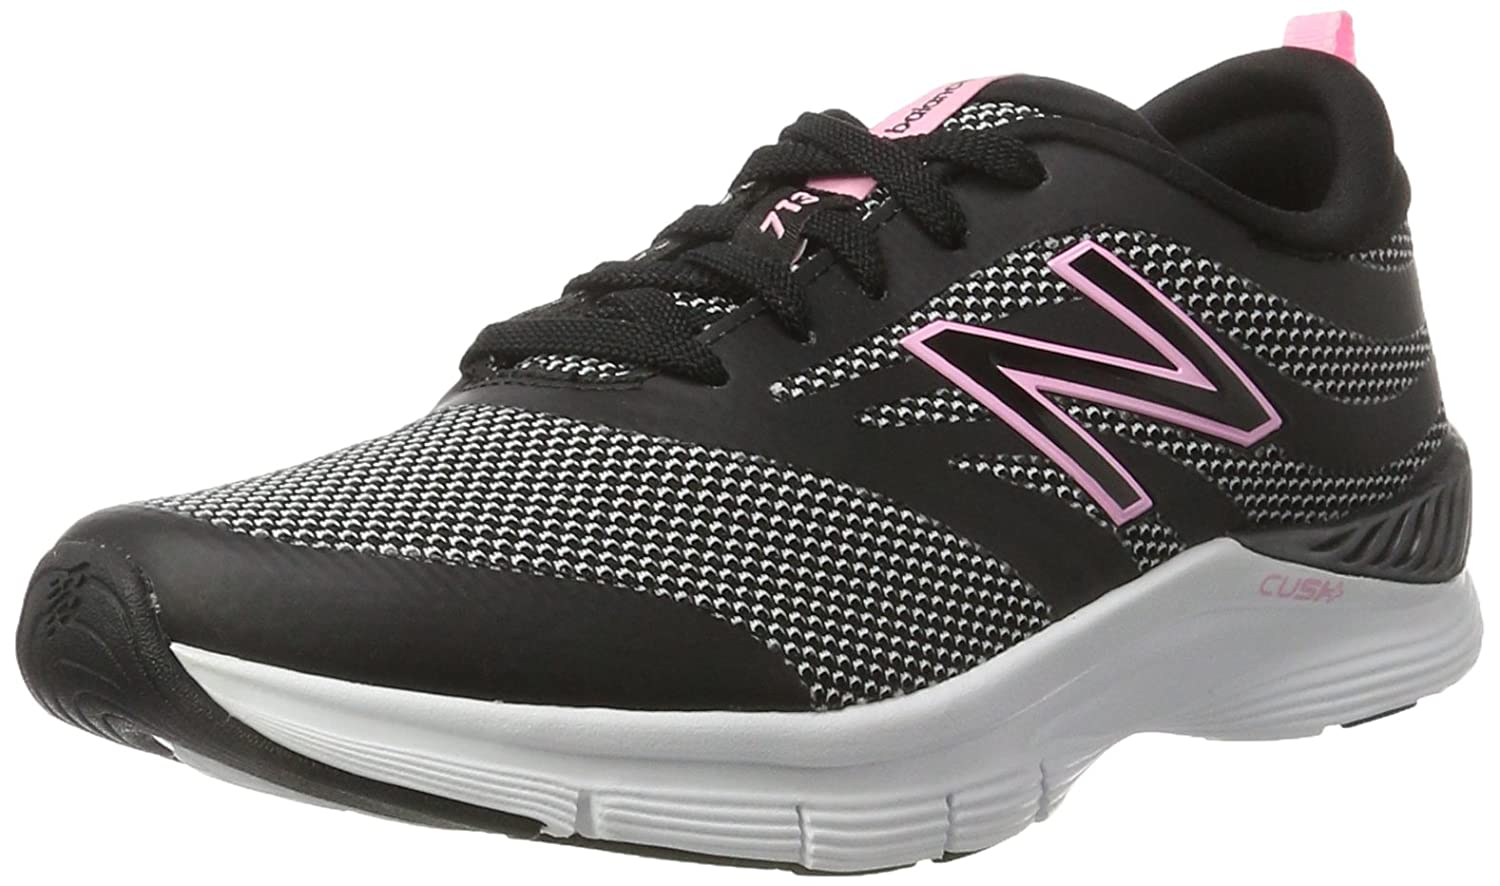 New Balance 713 Graphic Trainer, Zapatillas Deportivas para Interior Mujer WX713V1 Training Shoe-W